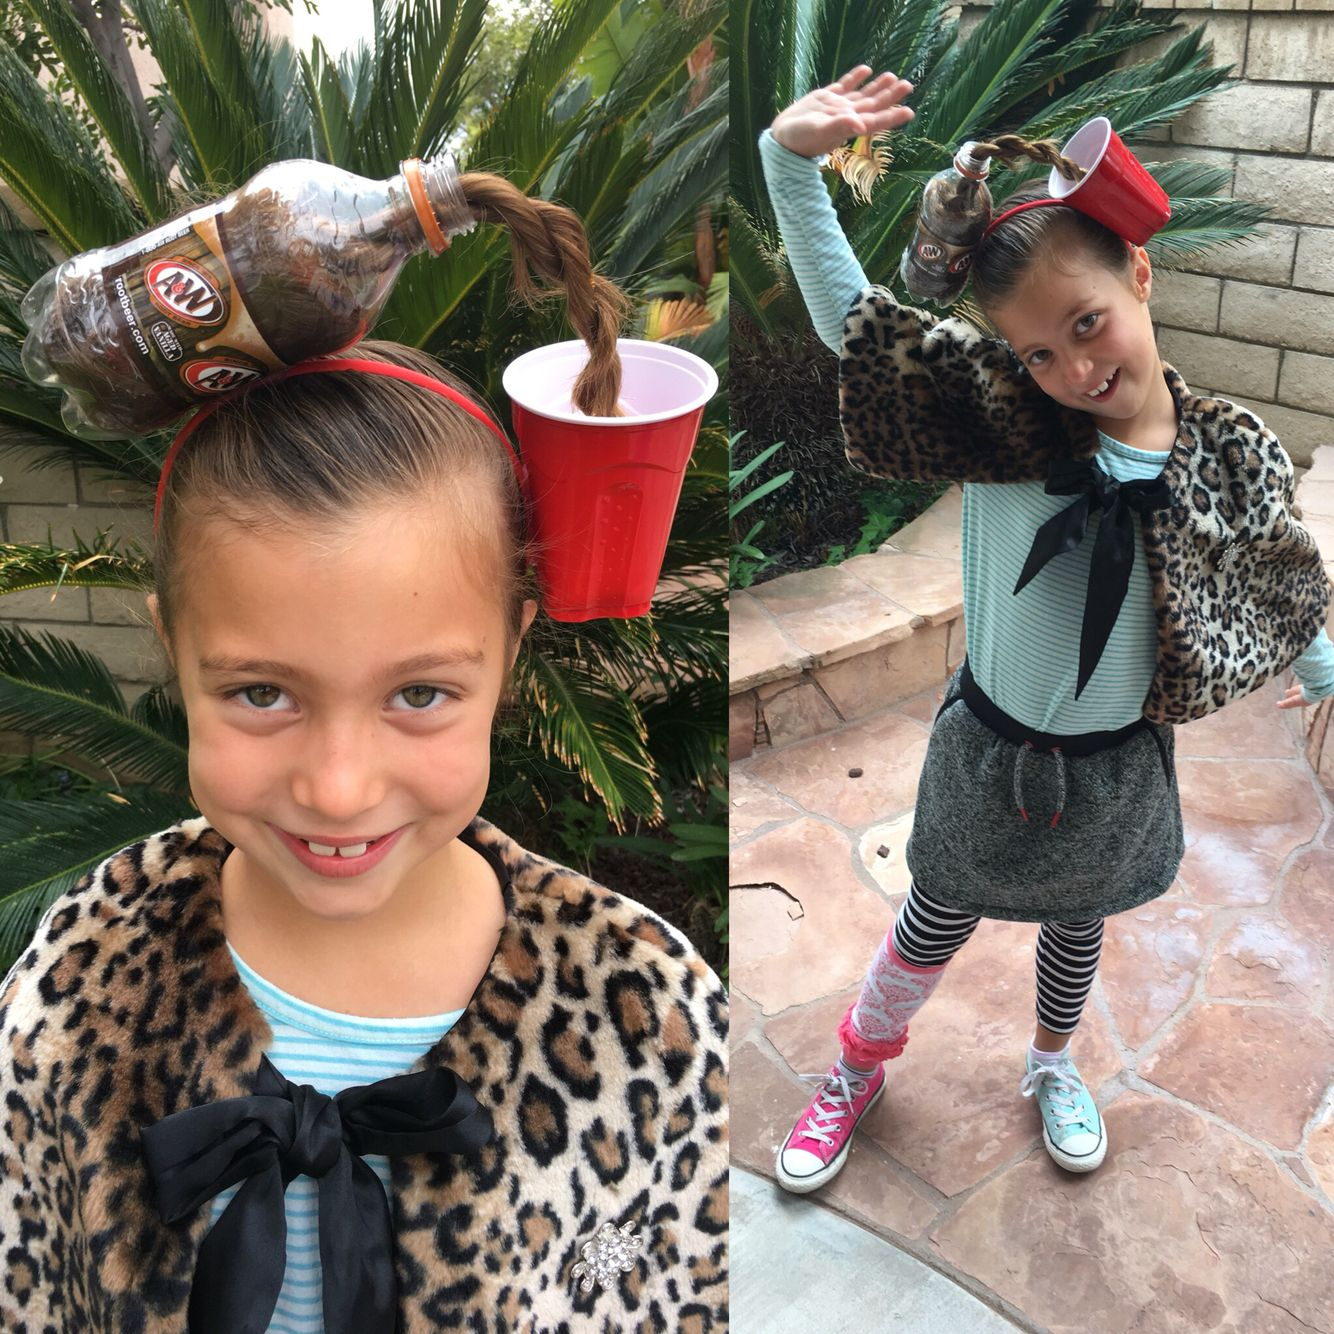 Crazy Hat Hair Day: Whacky And Crazy Hair Day! Soda Bottle Style. Girls Hair